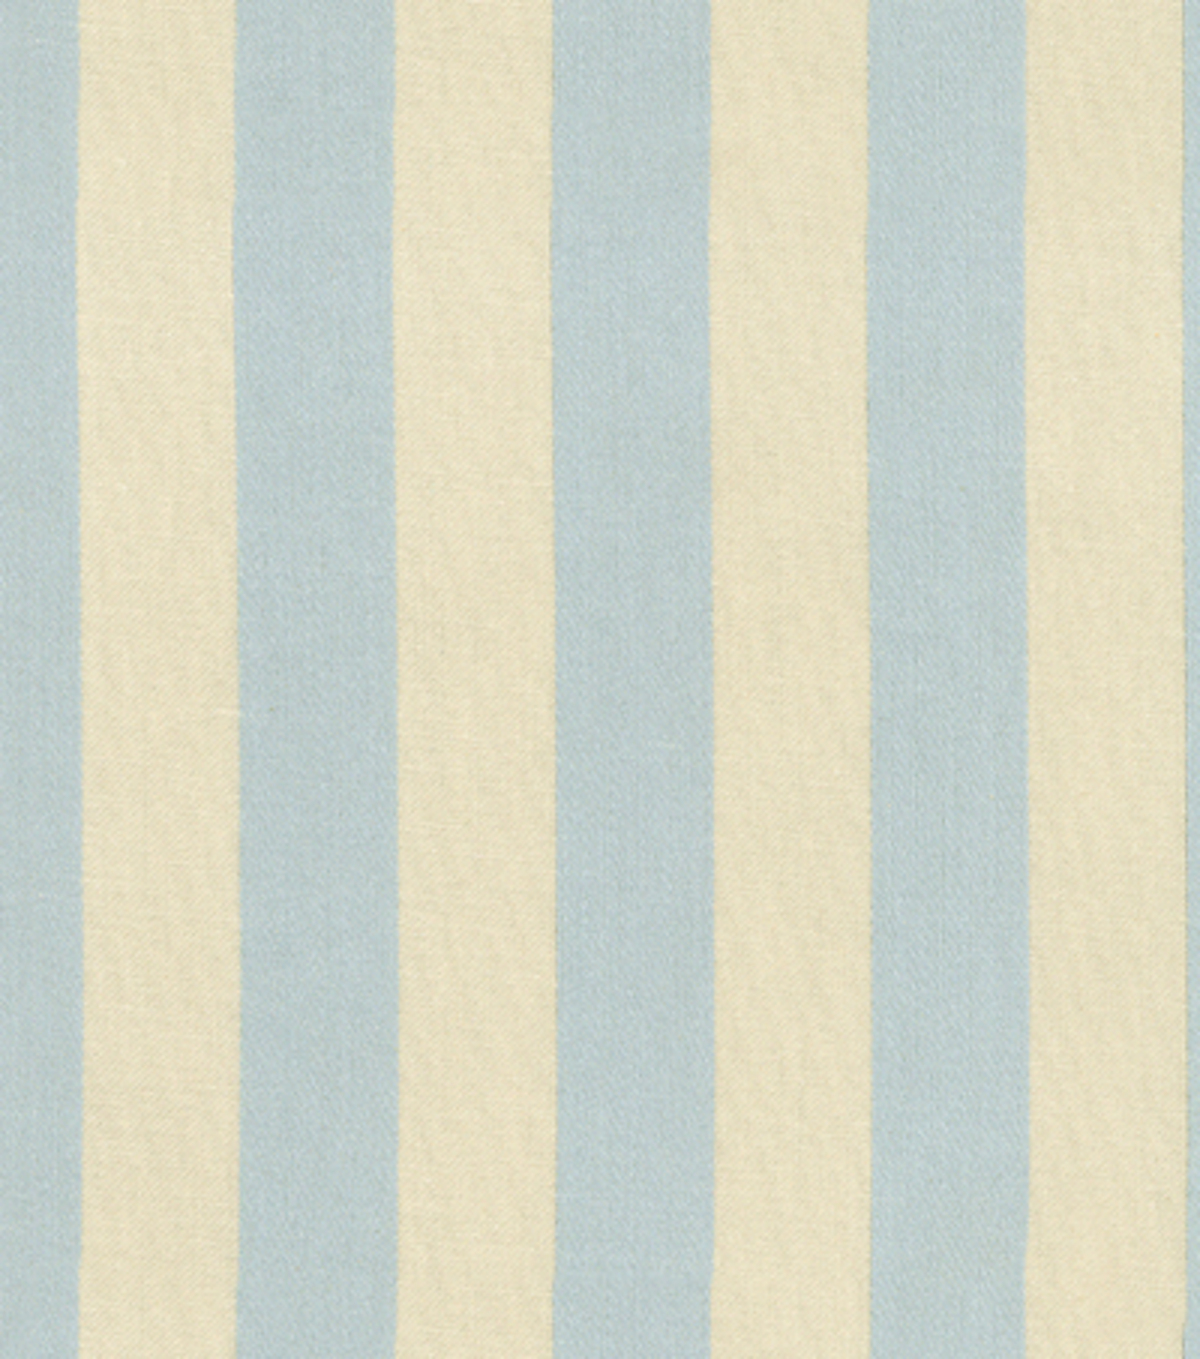 Home Decor 8\u0022x8\u0022 Fabric Swatch-Covington New Easy Awning Stp